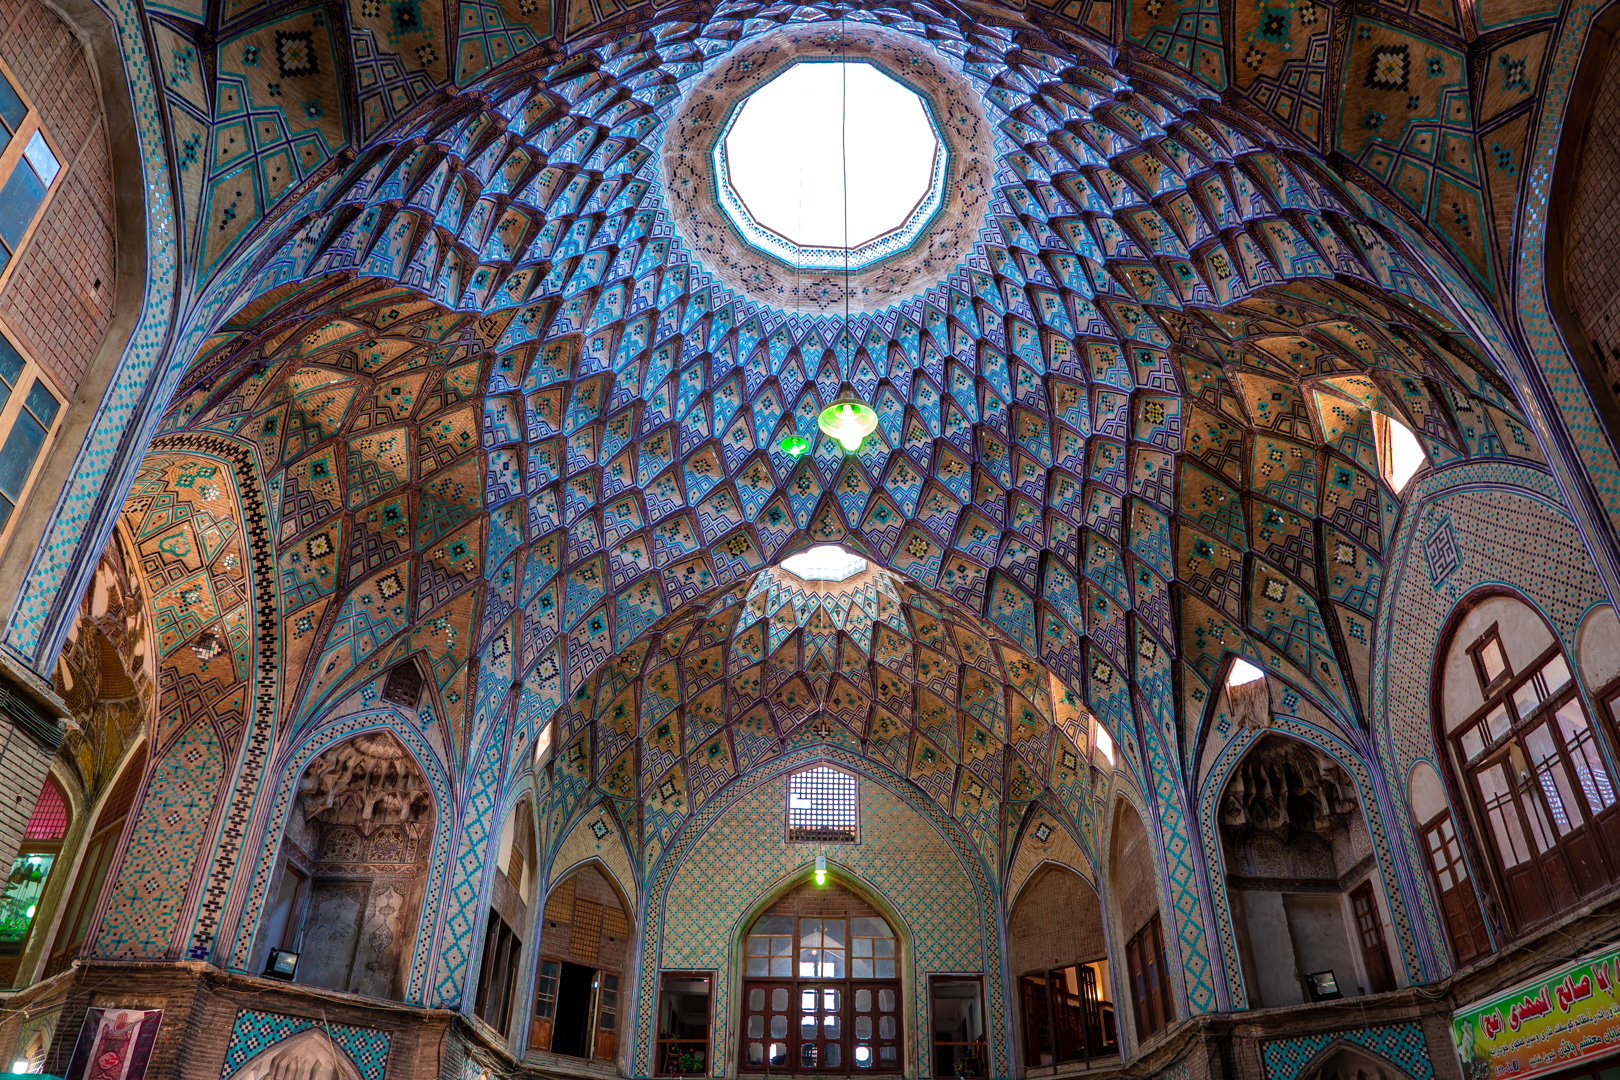 Kashan grand bazaar is a sight to behold. And photograph. Taken with the Panasonic S1